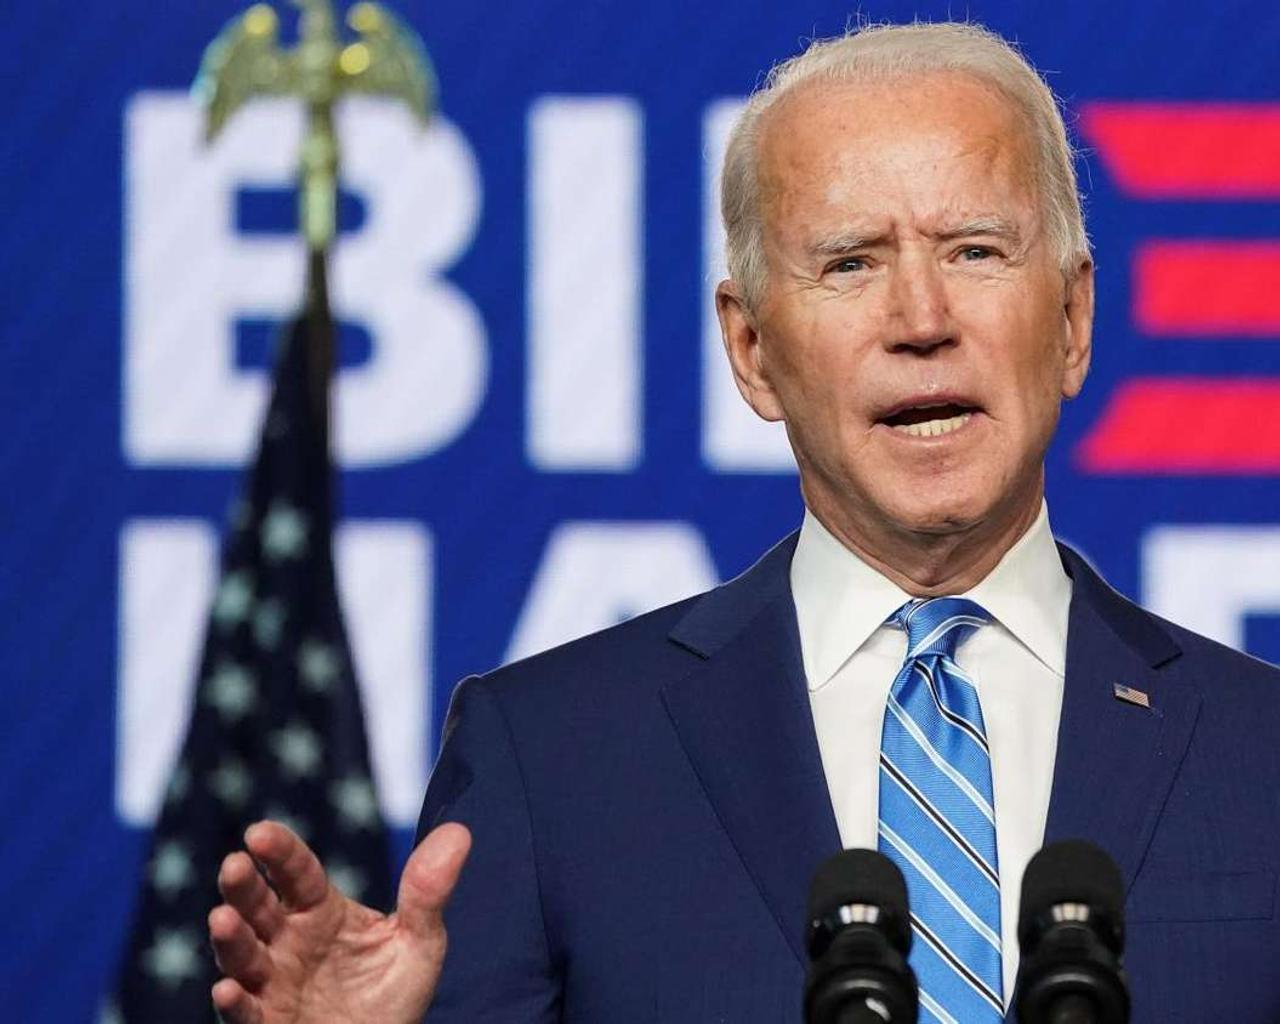 Biden will visit the border with Mexico amid the immigration crisis as Trump criticizes his performance